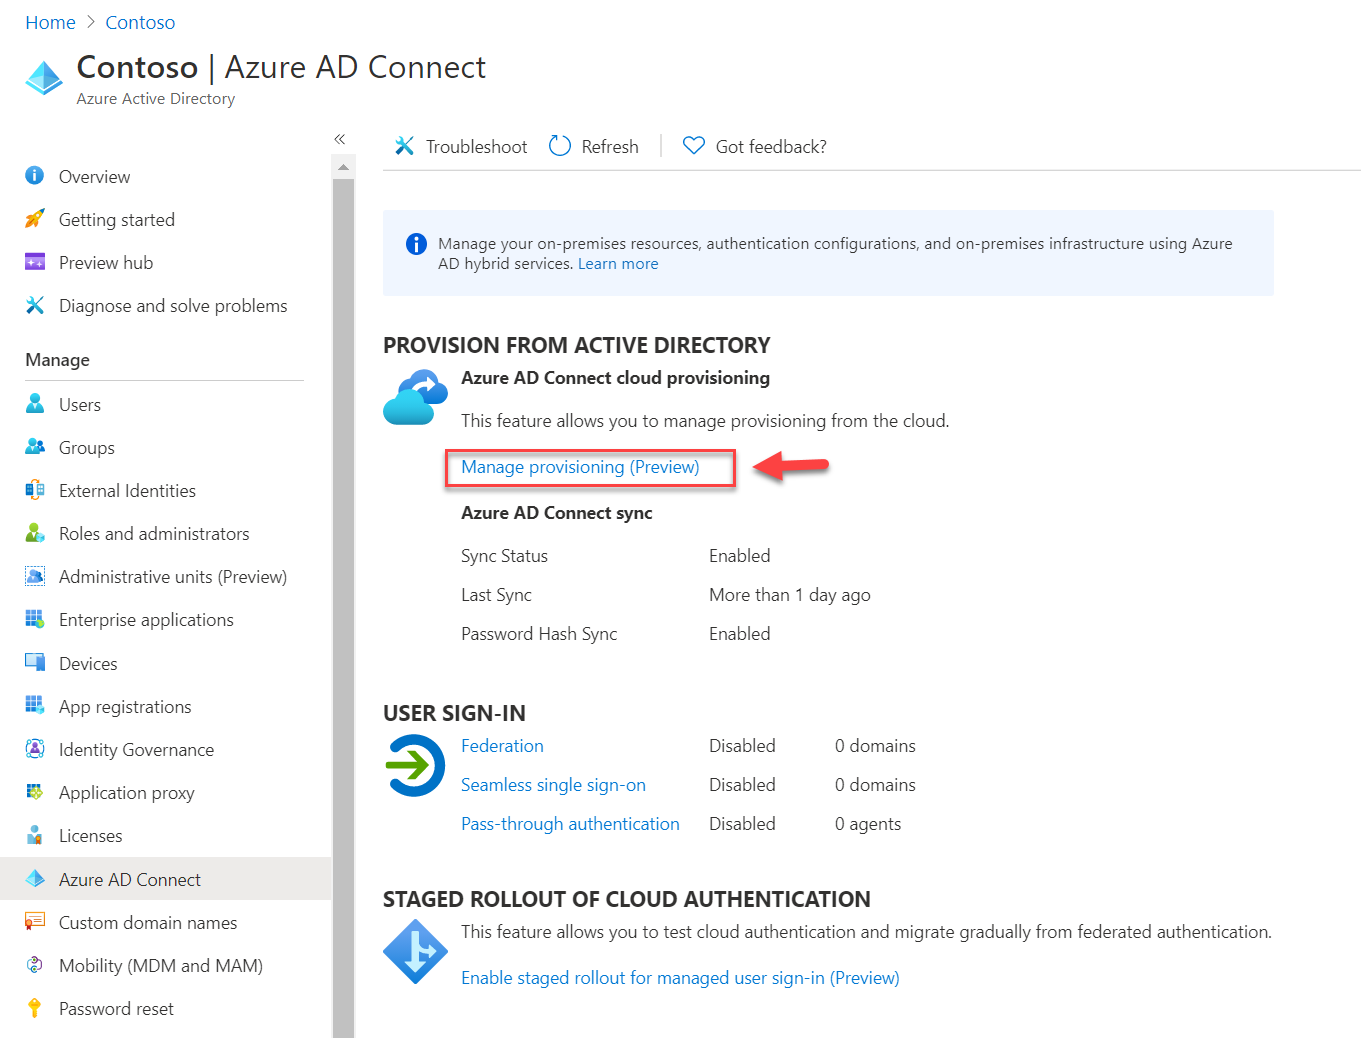 Manage provisioning (Preview) option